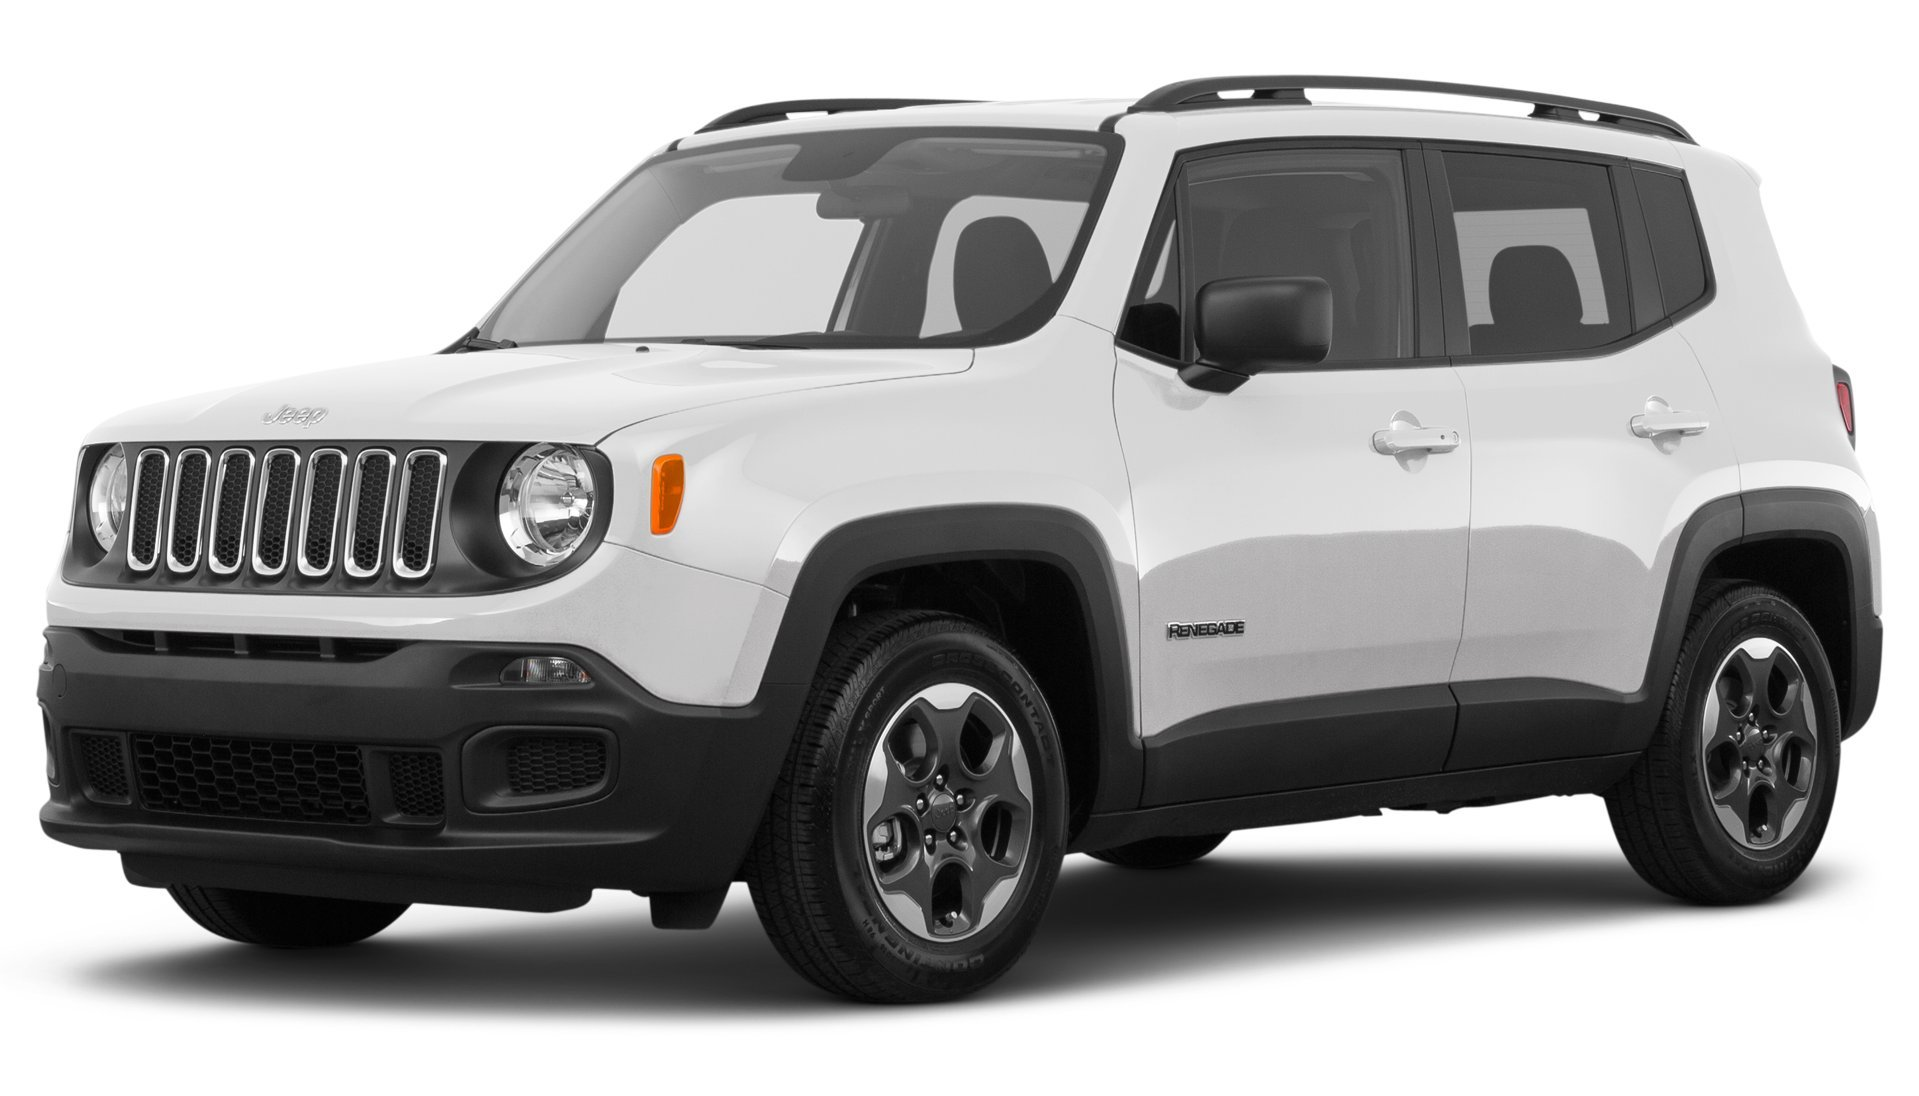 2017 jeep renegade reviews images and specs vehicles. Black Bedroom Furniture Sets. Home Design Ideas